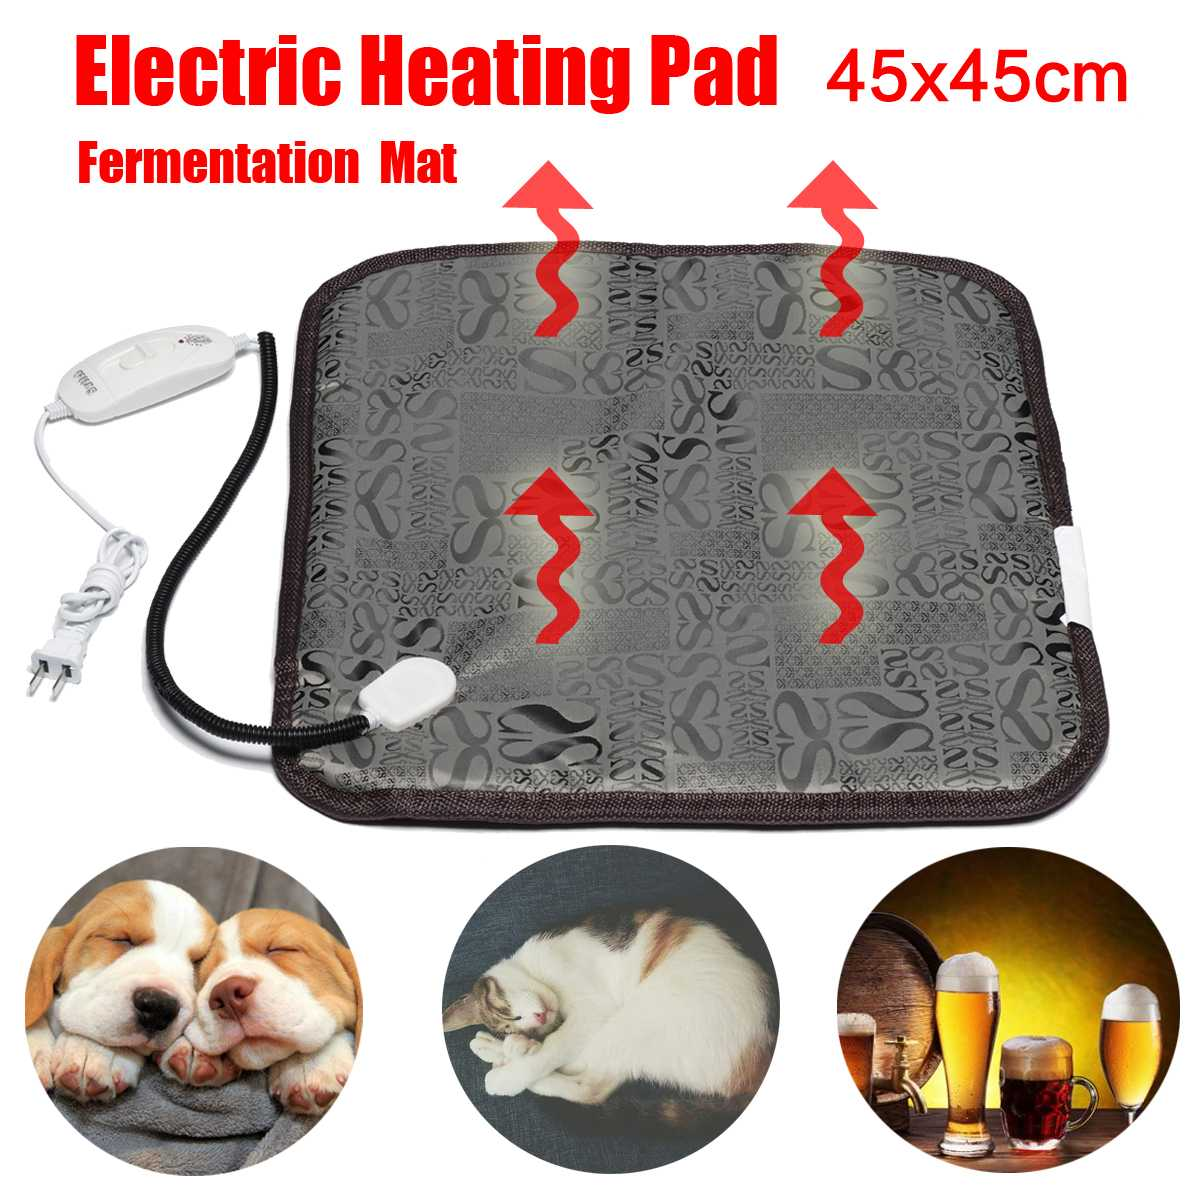 Pet Dog Cat Electric Heating Pad Winter Warmer Carpet For Bed Animals Electric Blanket Home Beer Brew Fermentation Heater Mat